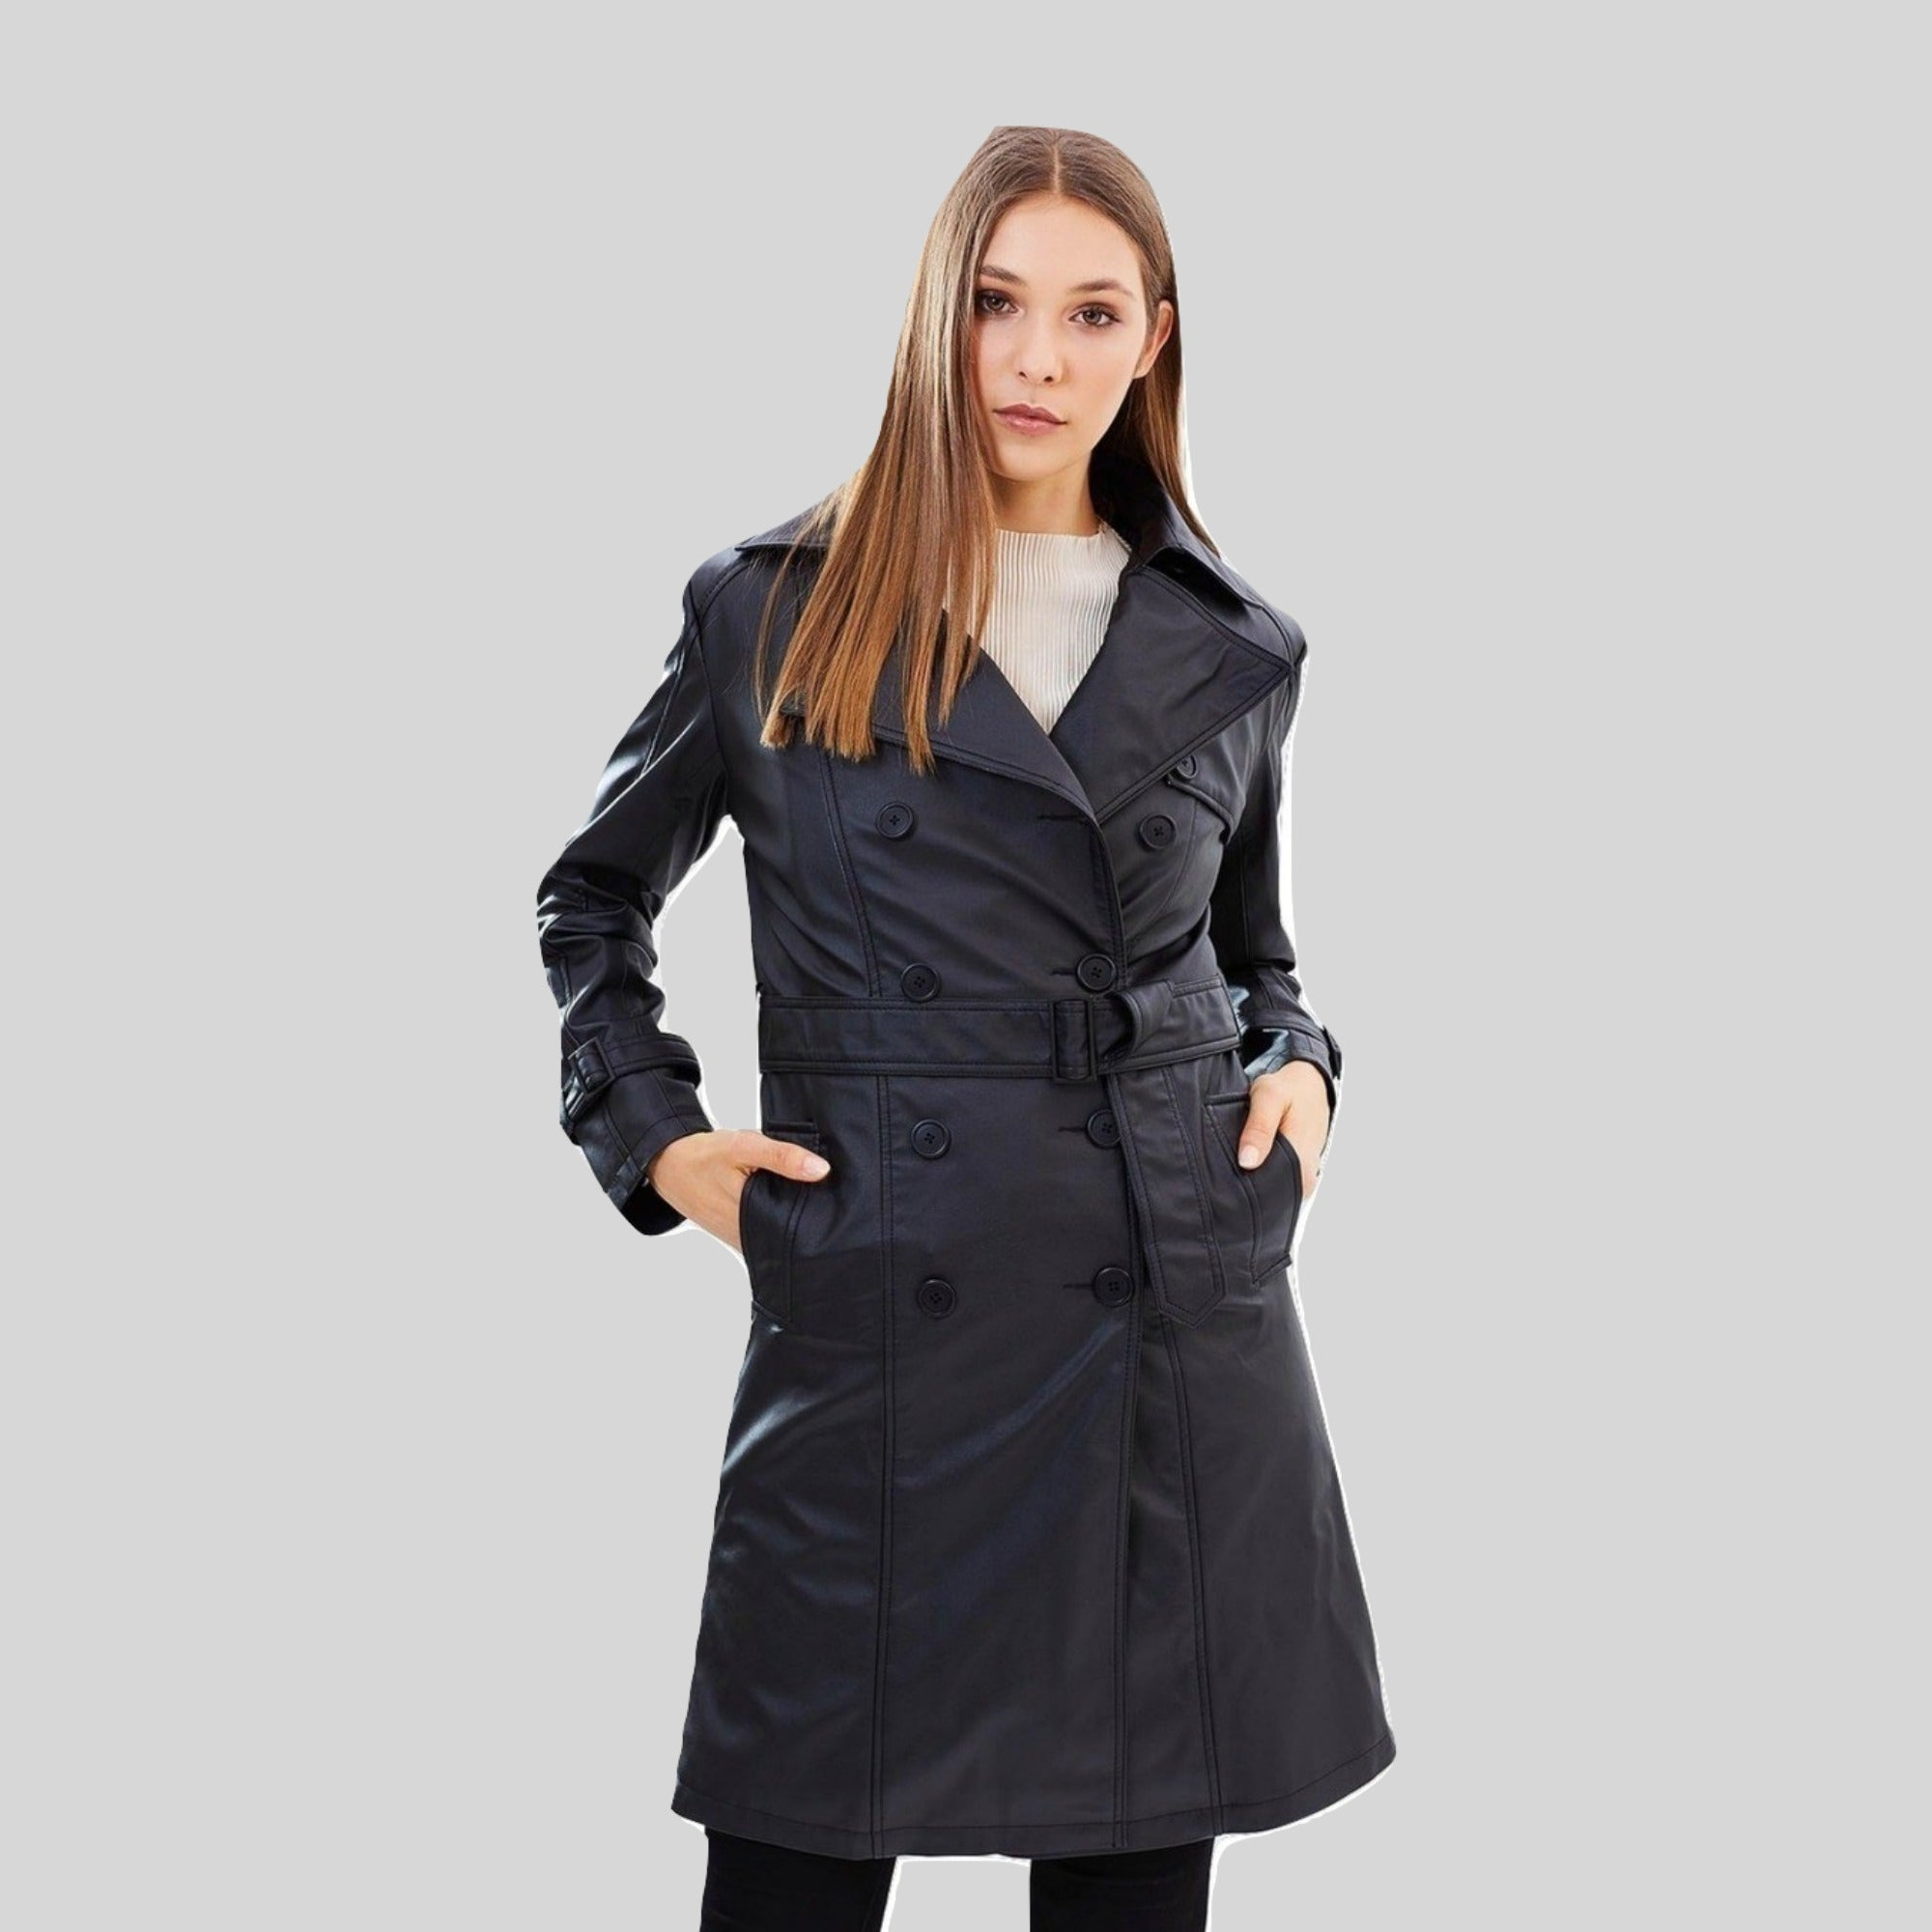 Trench Coat Vegan Leather 'Irene' Black